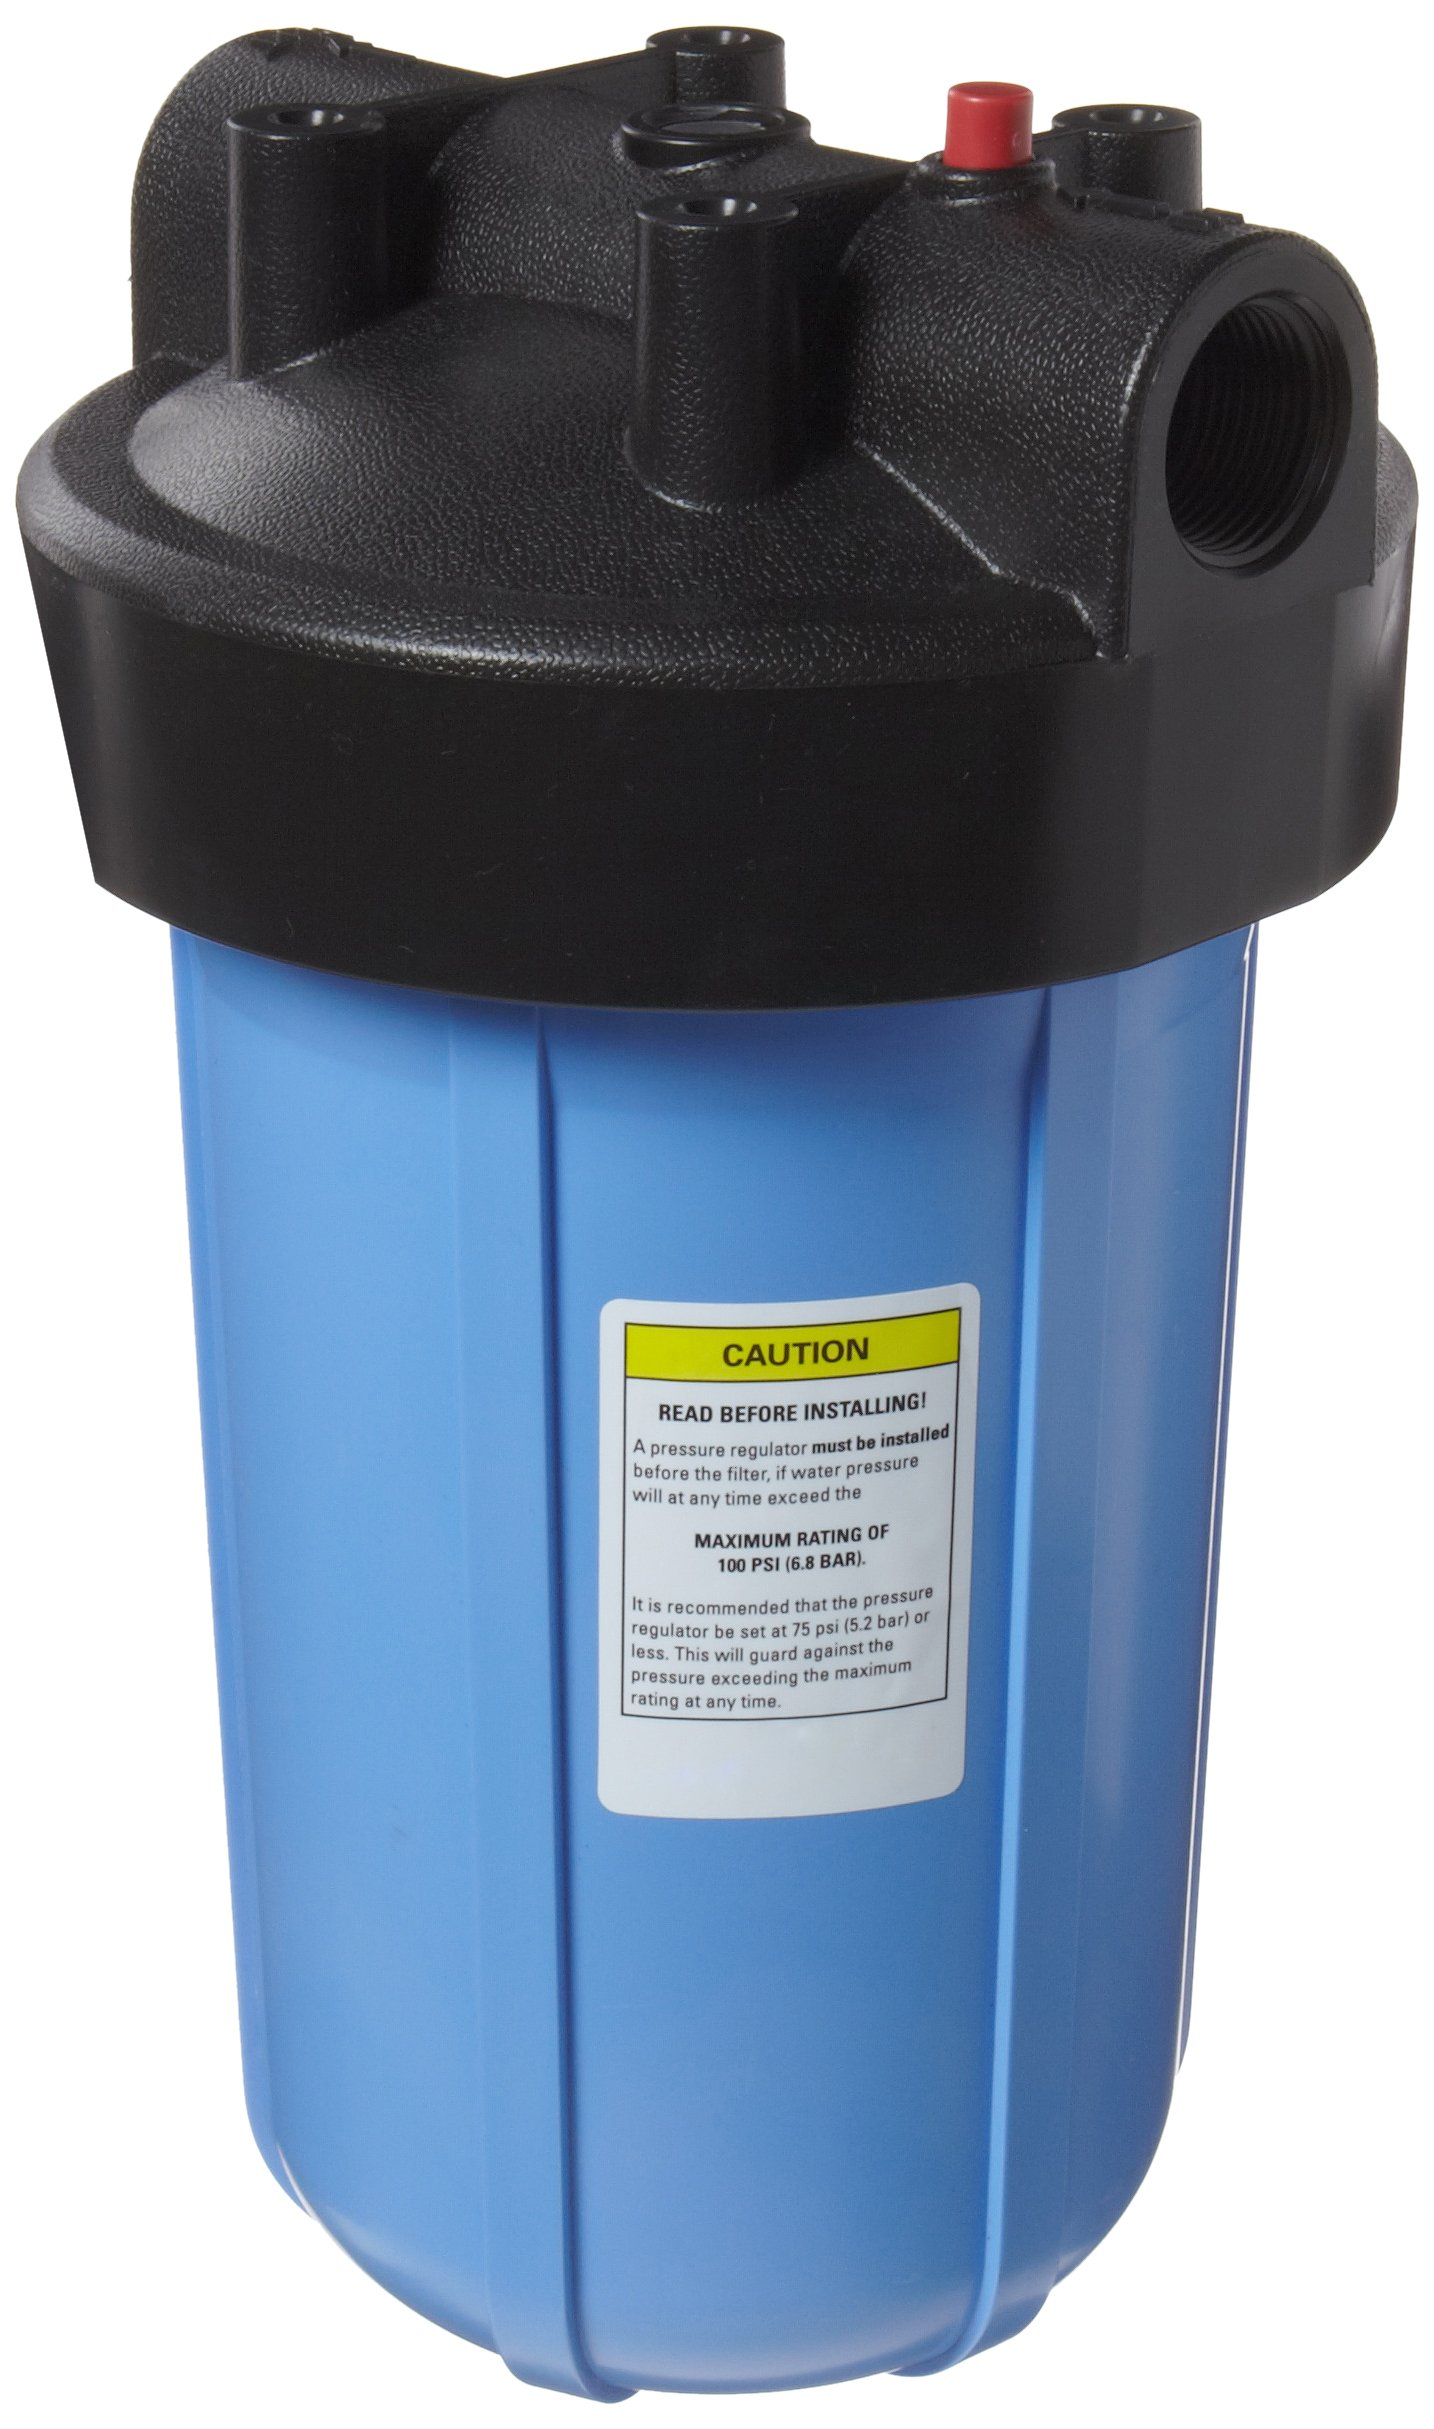 Pentek 150237 #10 Big Blue Filter Housing, 1'' Female NPT Inlet/Outlet by Pentek